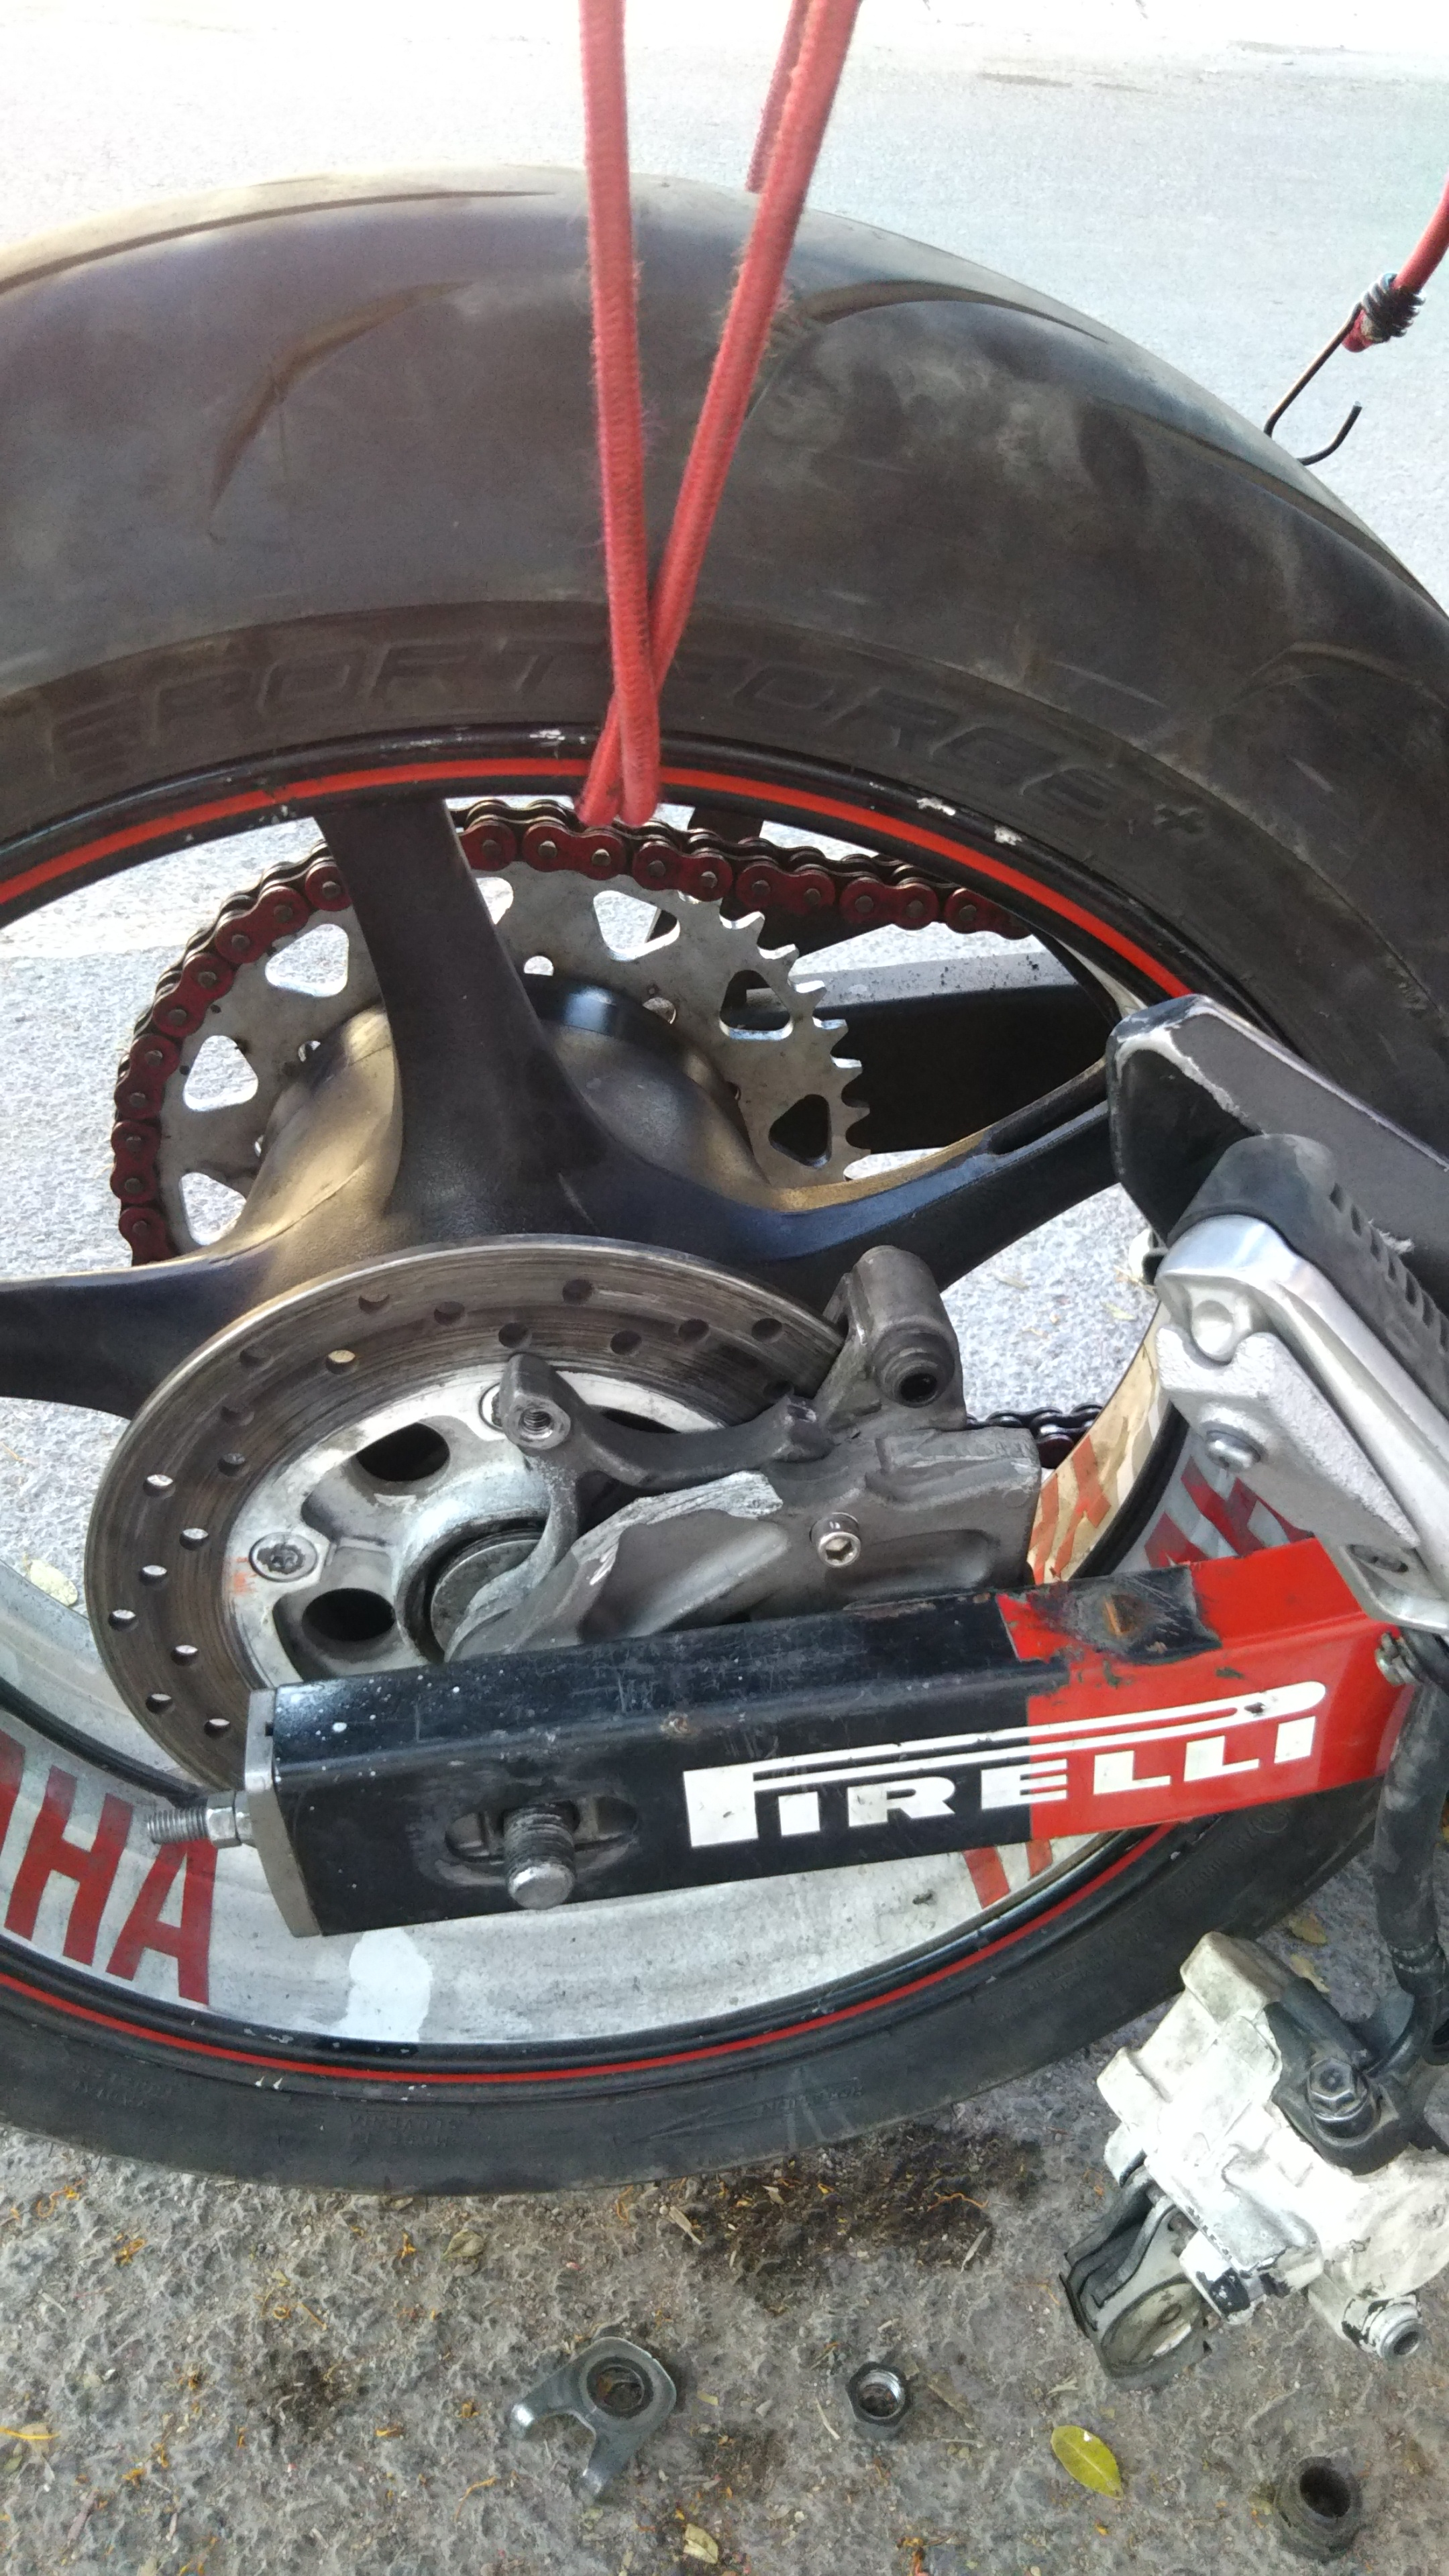 View of overlapped caliper brackets (R6 inner, Fz6r outer)